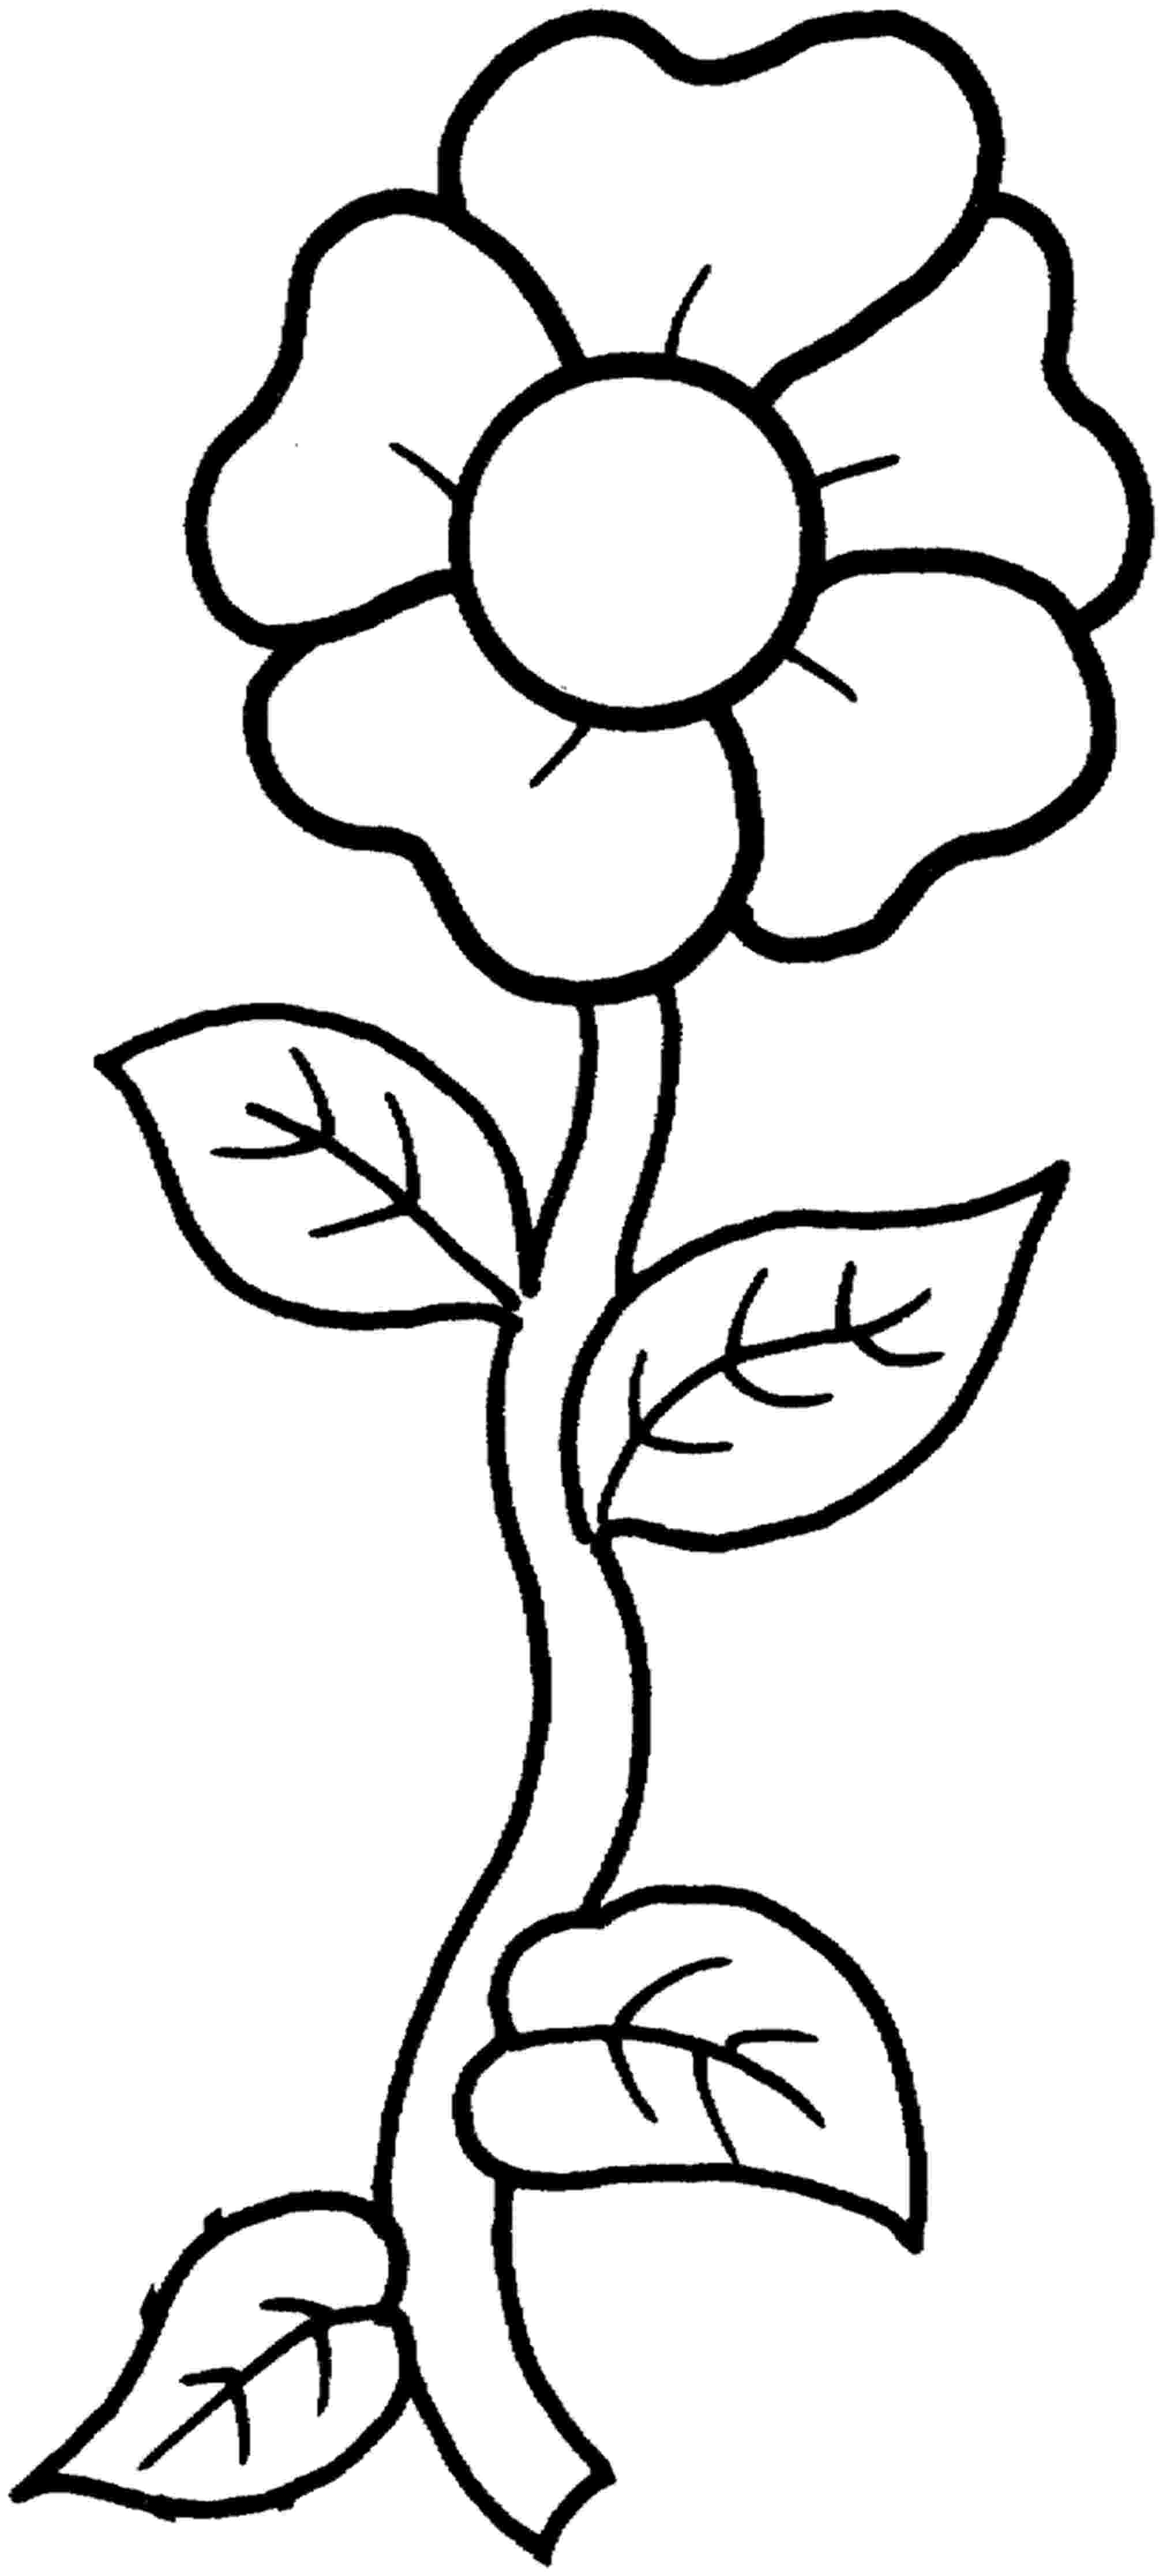 flower for coloring free printable flower coloring pages for kids best flower coloring for 1 1